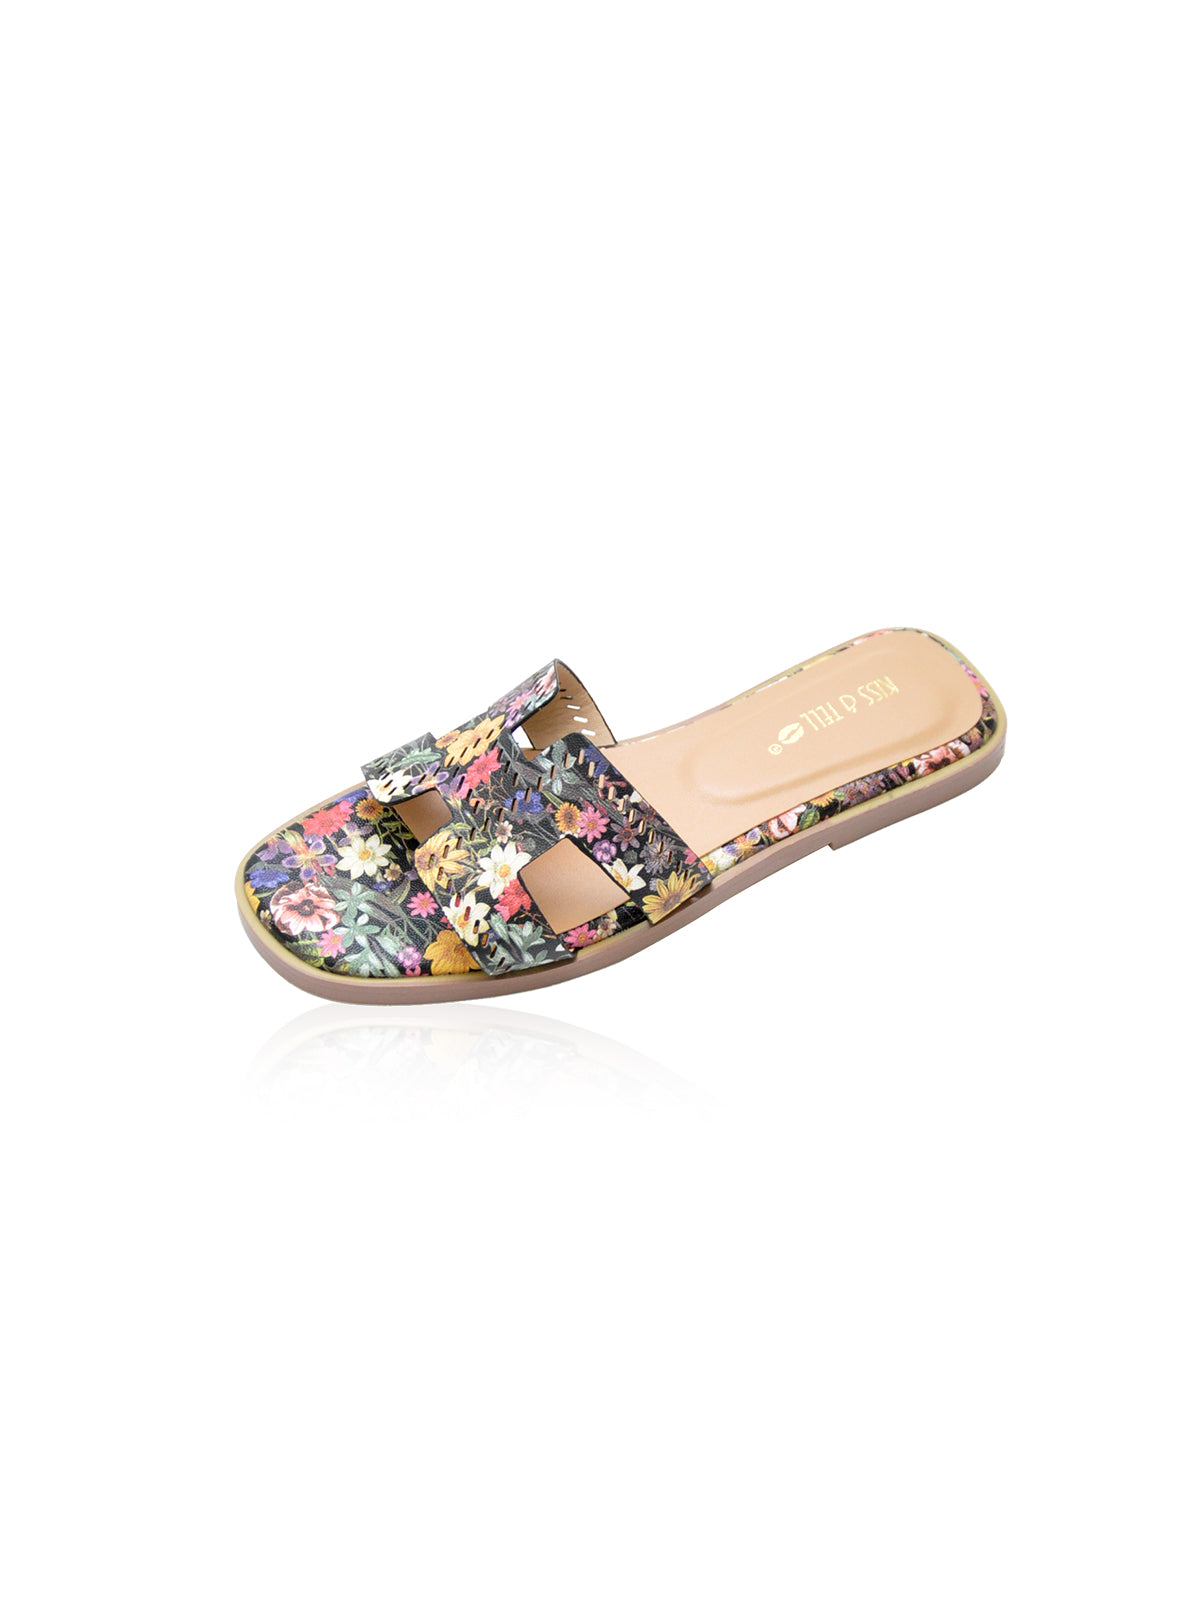 Alison Flats in Black Floral